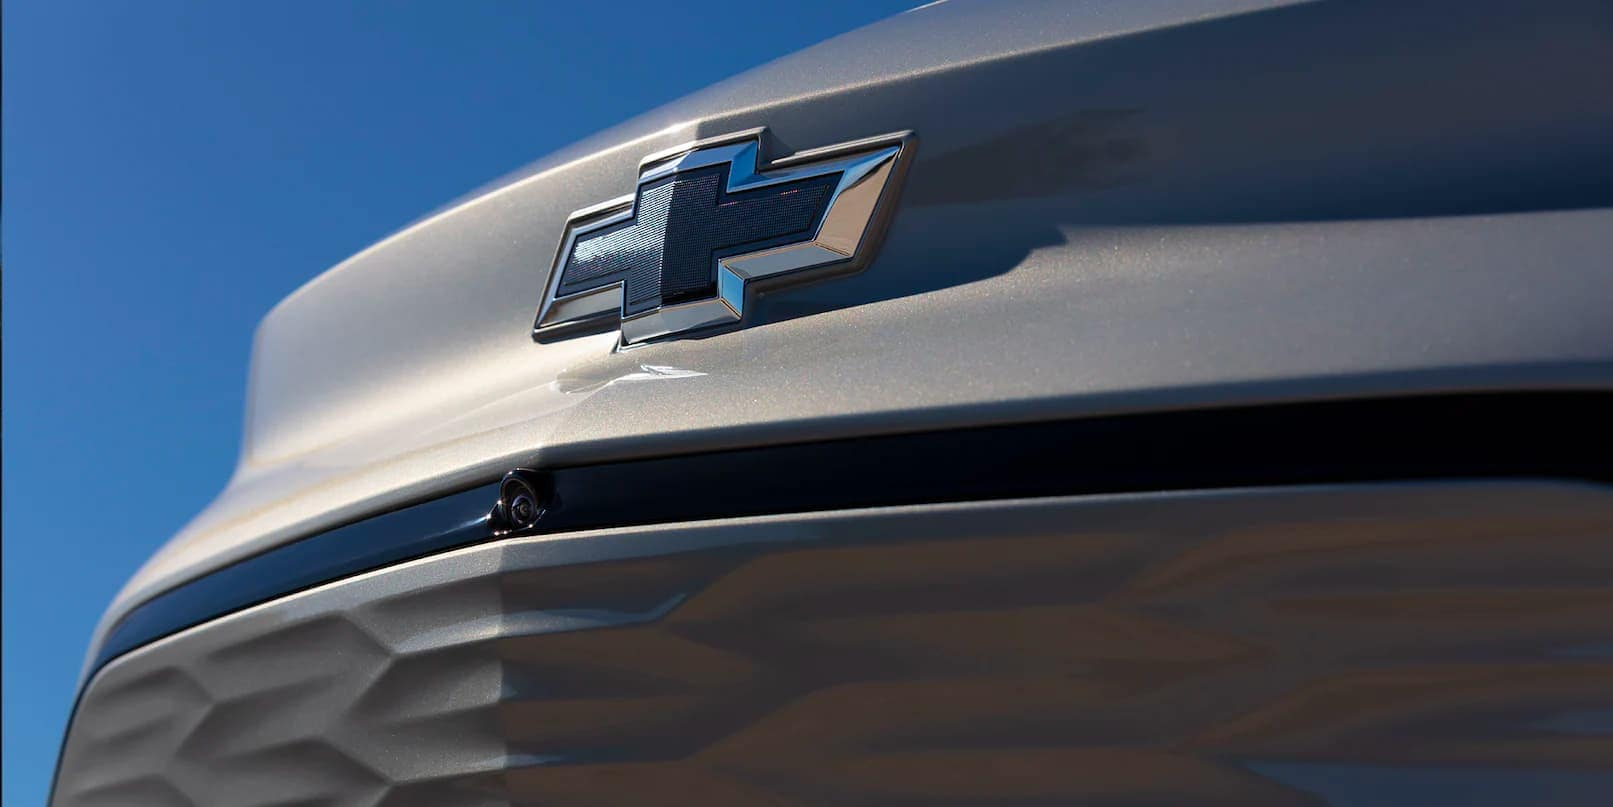 A close up shows the bowtie emblem on the front of a silver 2022 Chevy Bolt EUV.